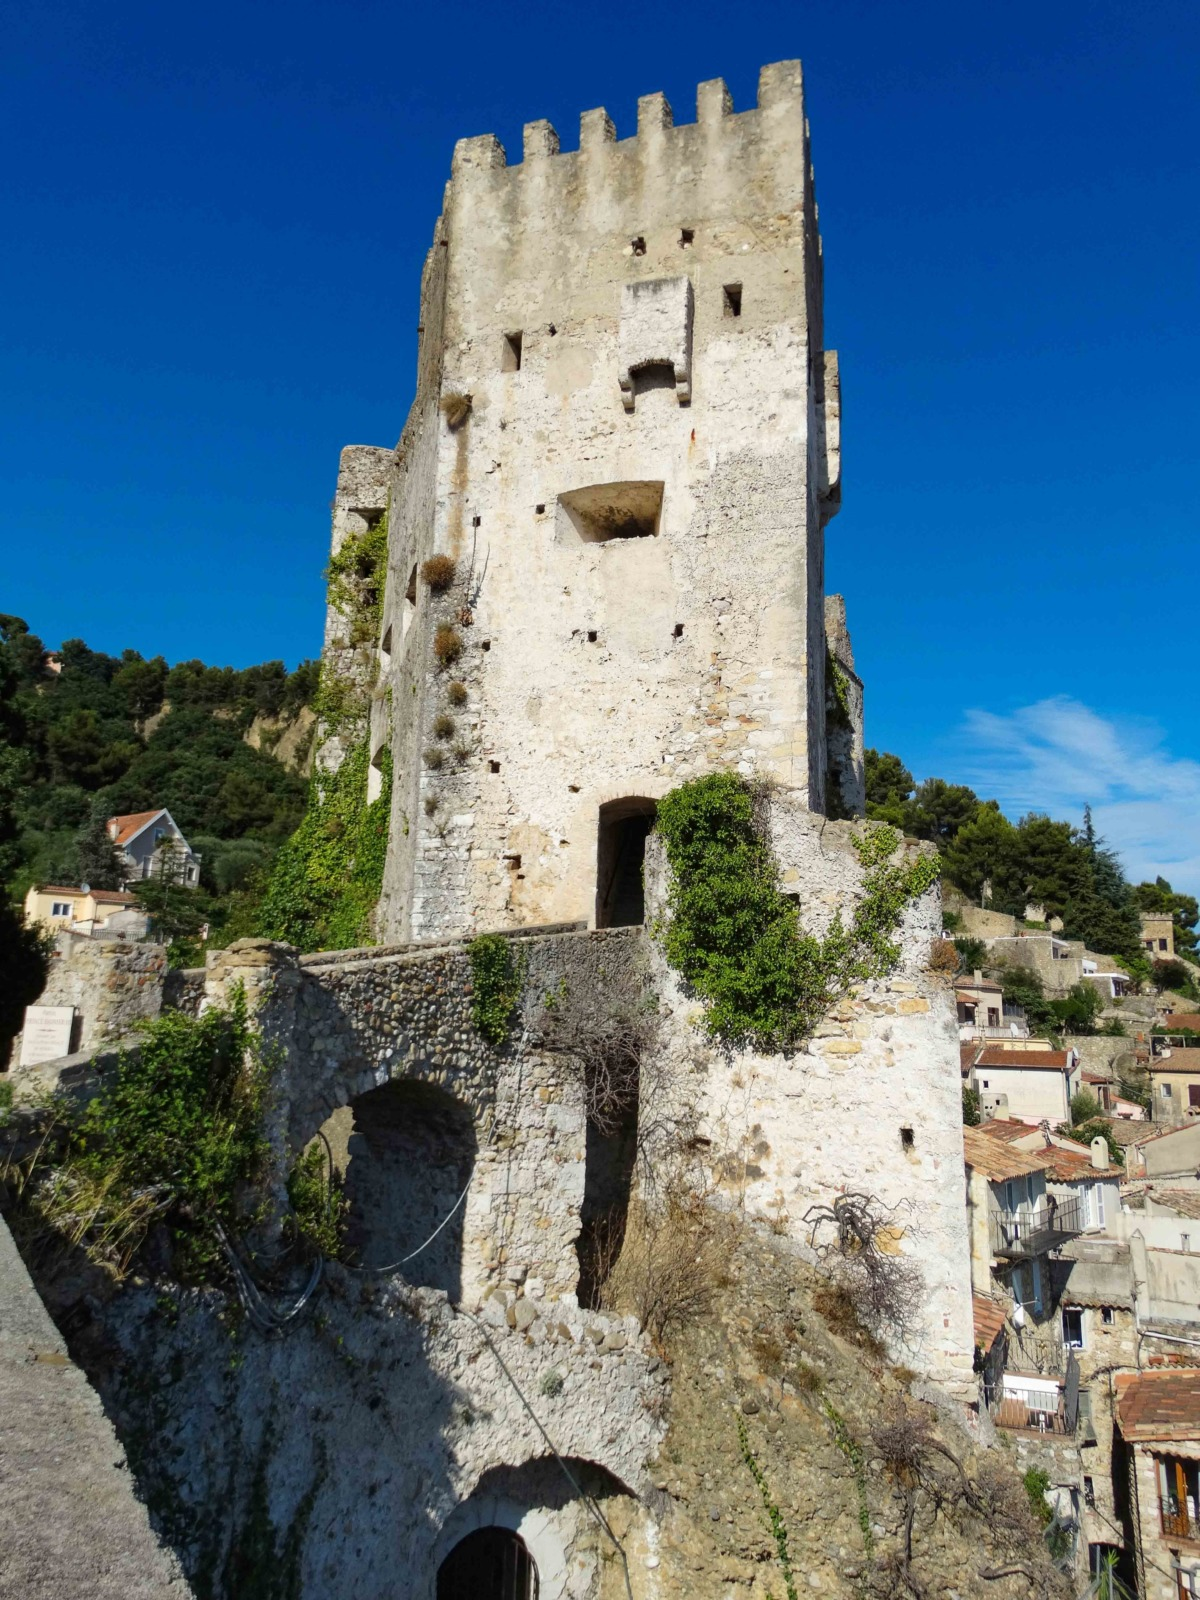 The Grimaldi Castle in Roquebrune-Cap-Martin © Leon petrosyan - licence [CC BY-SA 4.0] from Wikimedia Commons